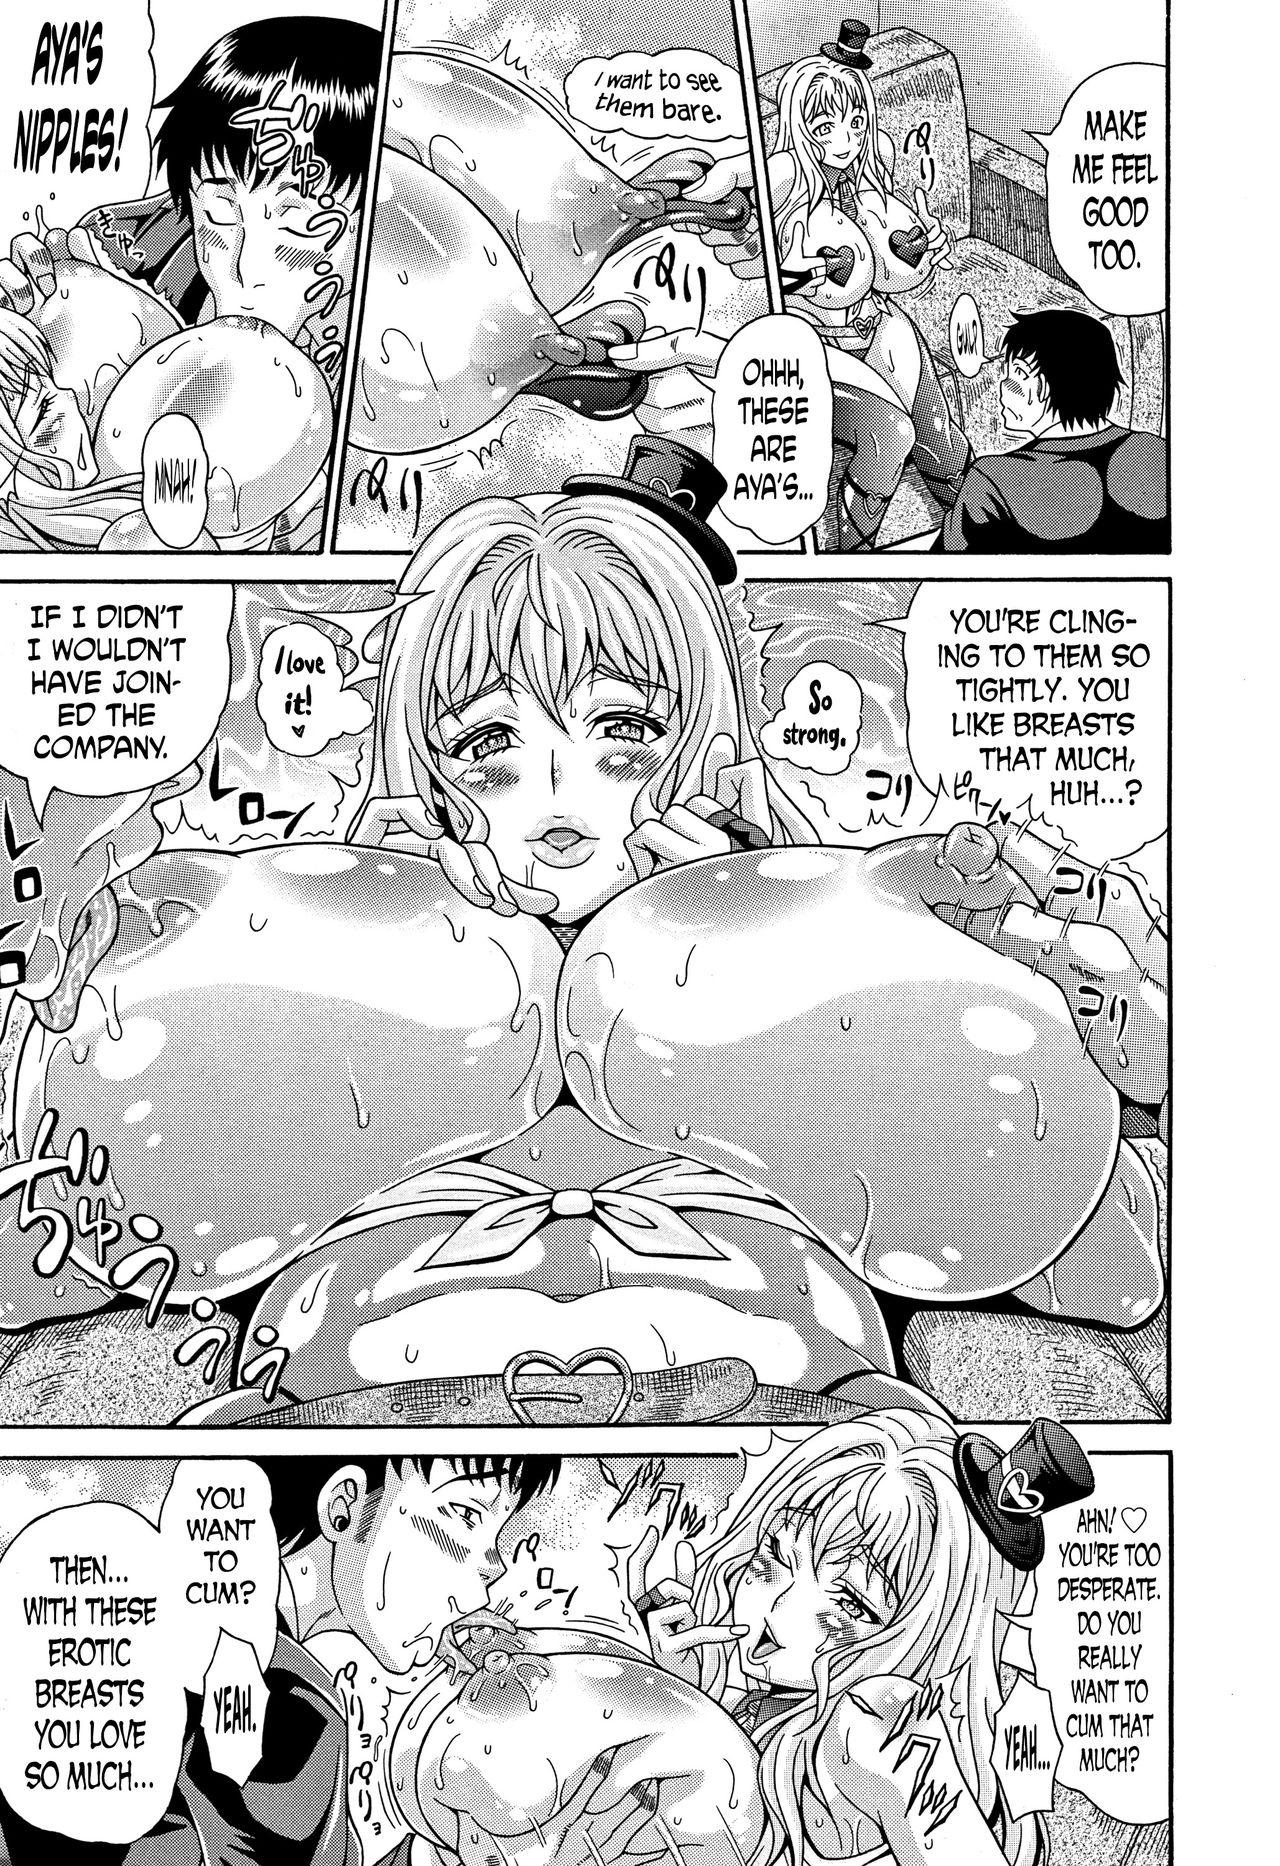 [Andou Hiroyuki] Mamire Chichi - Sticky Tits Feel Hot All Over. Ch.1-7 [English] [doujin-moe.us] 11